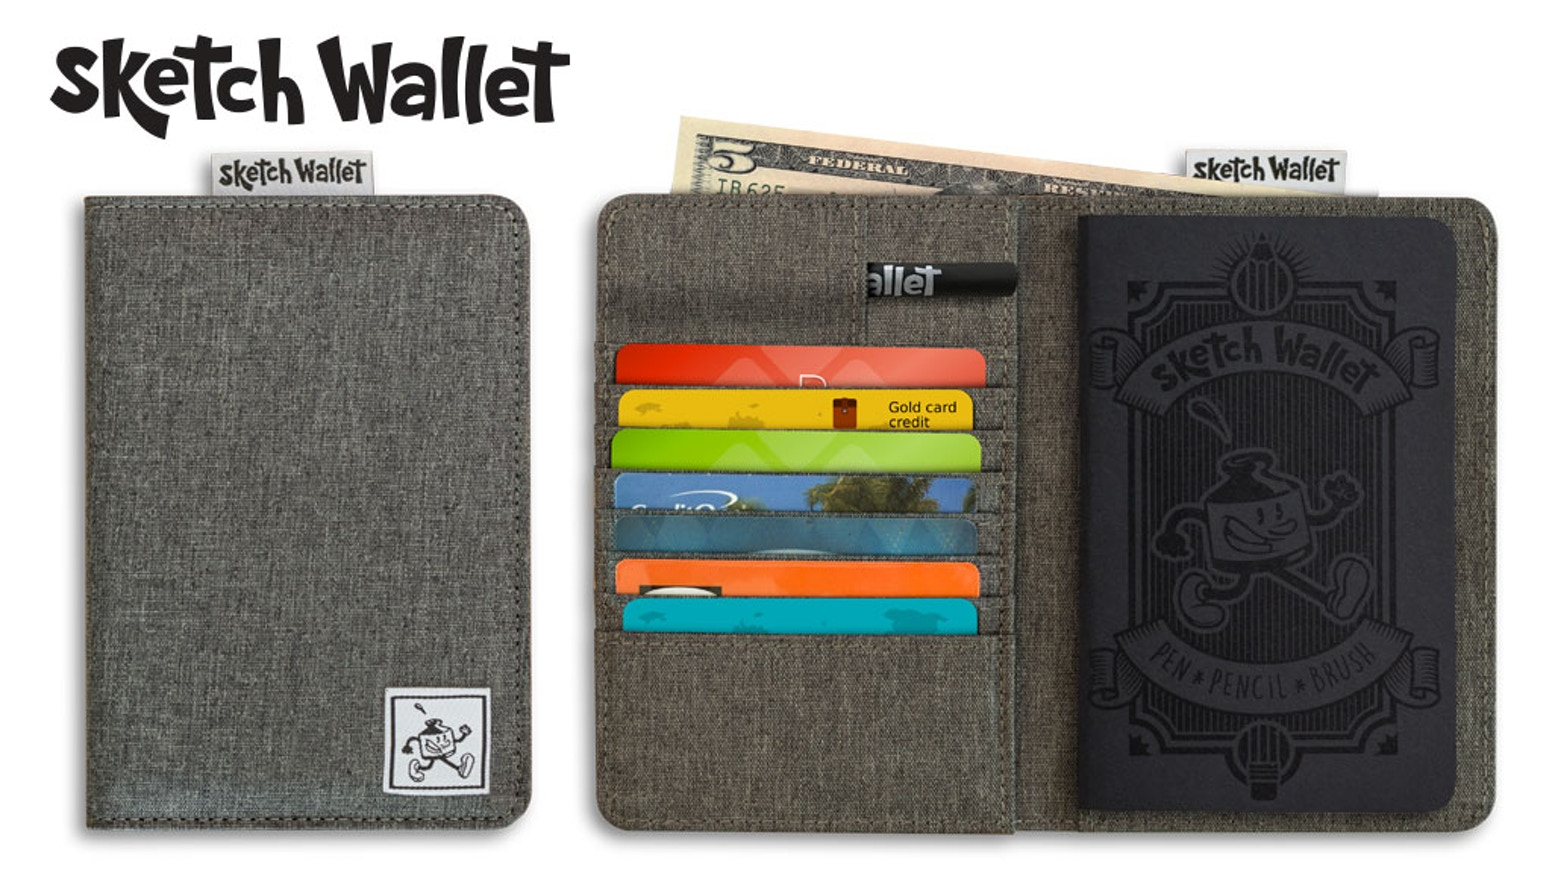 Always have your sketchbook with you with Sketch Wallet! It's a canvas wallet with a replaceable sketchbook inside.